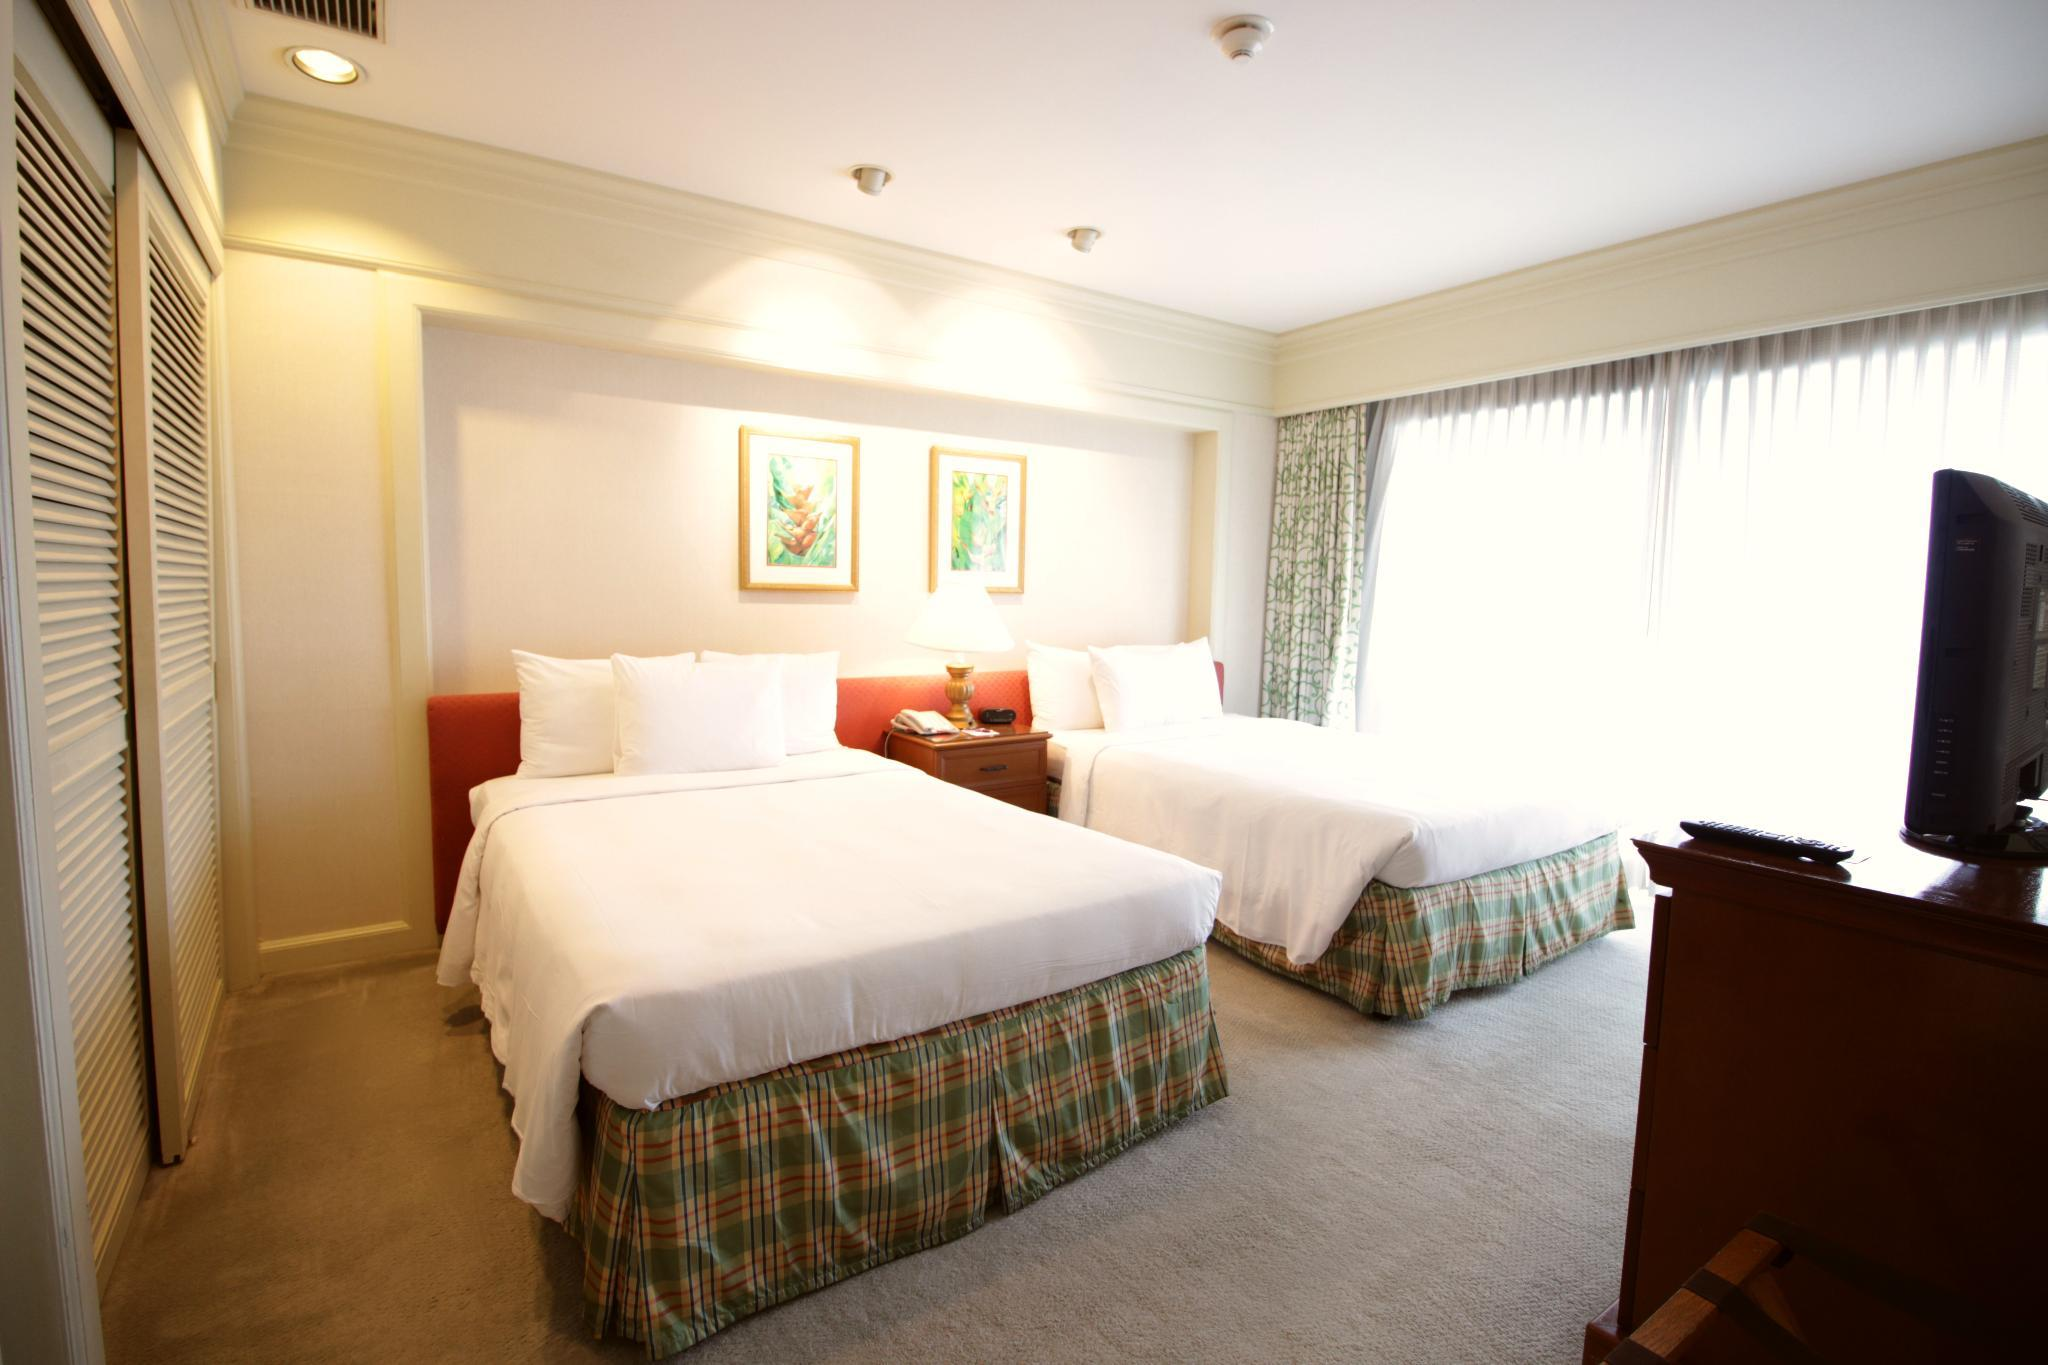 Executive Double Suite for 2 People - Club Access Included